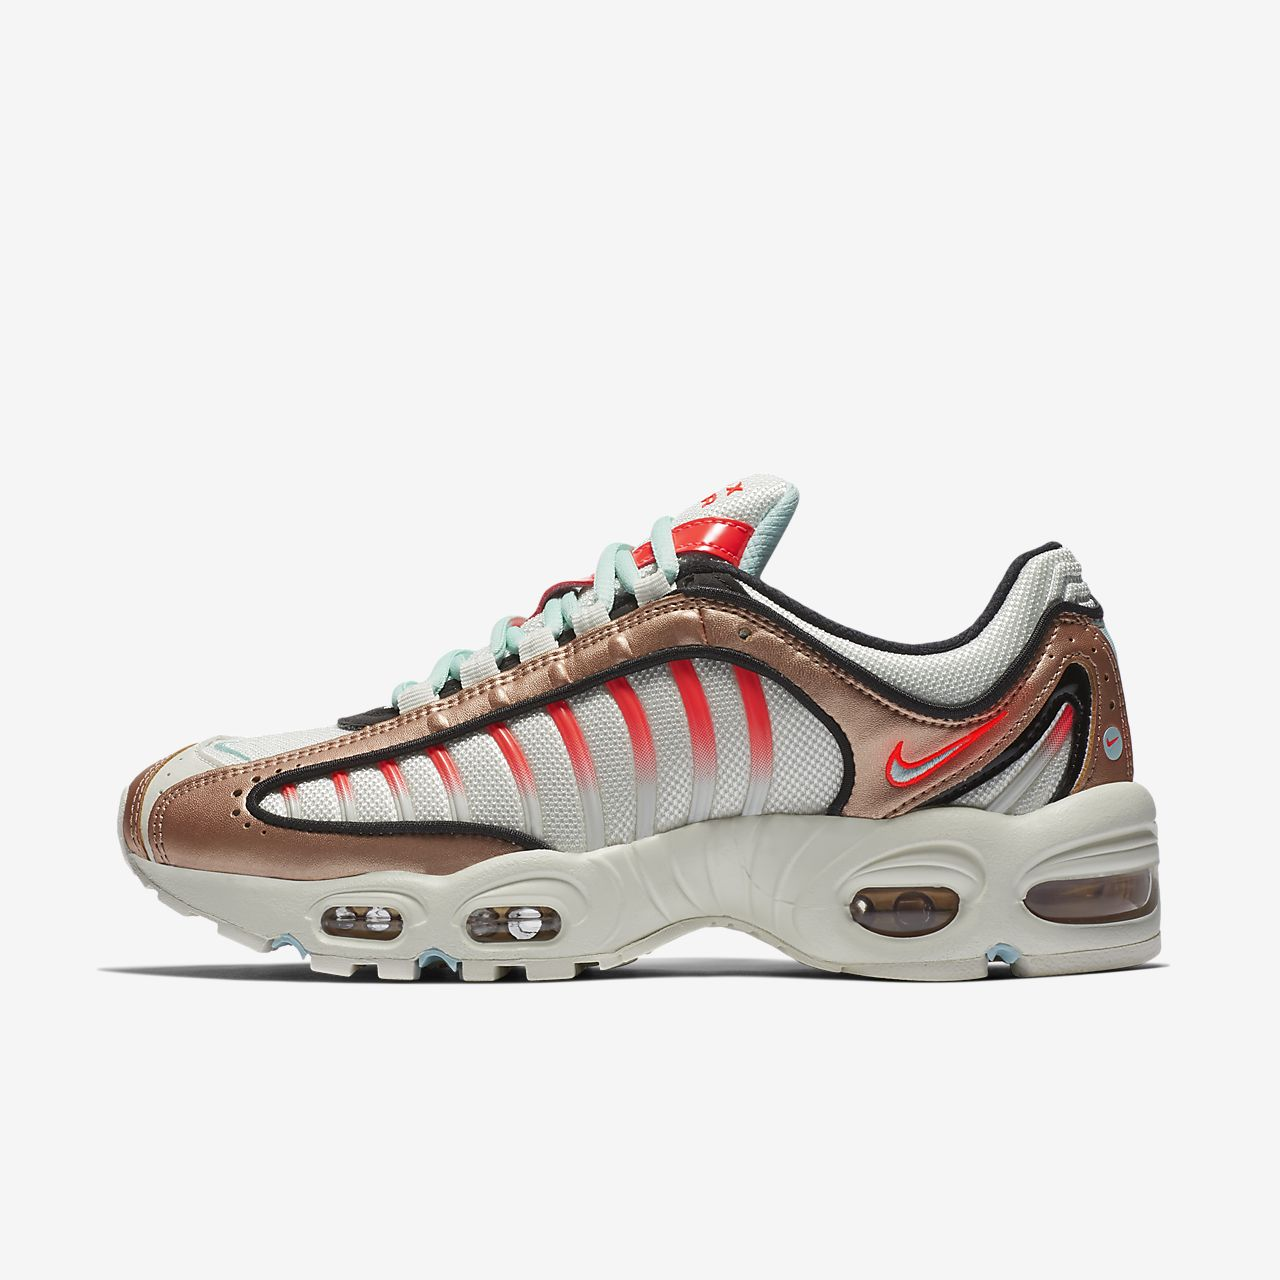 online here sells newest collection Nike Air Max Tailwind IV Women's Shoe